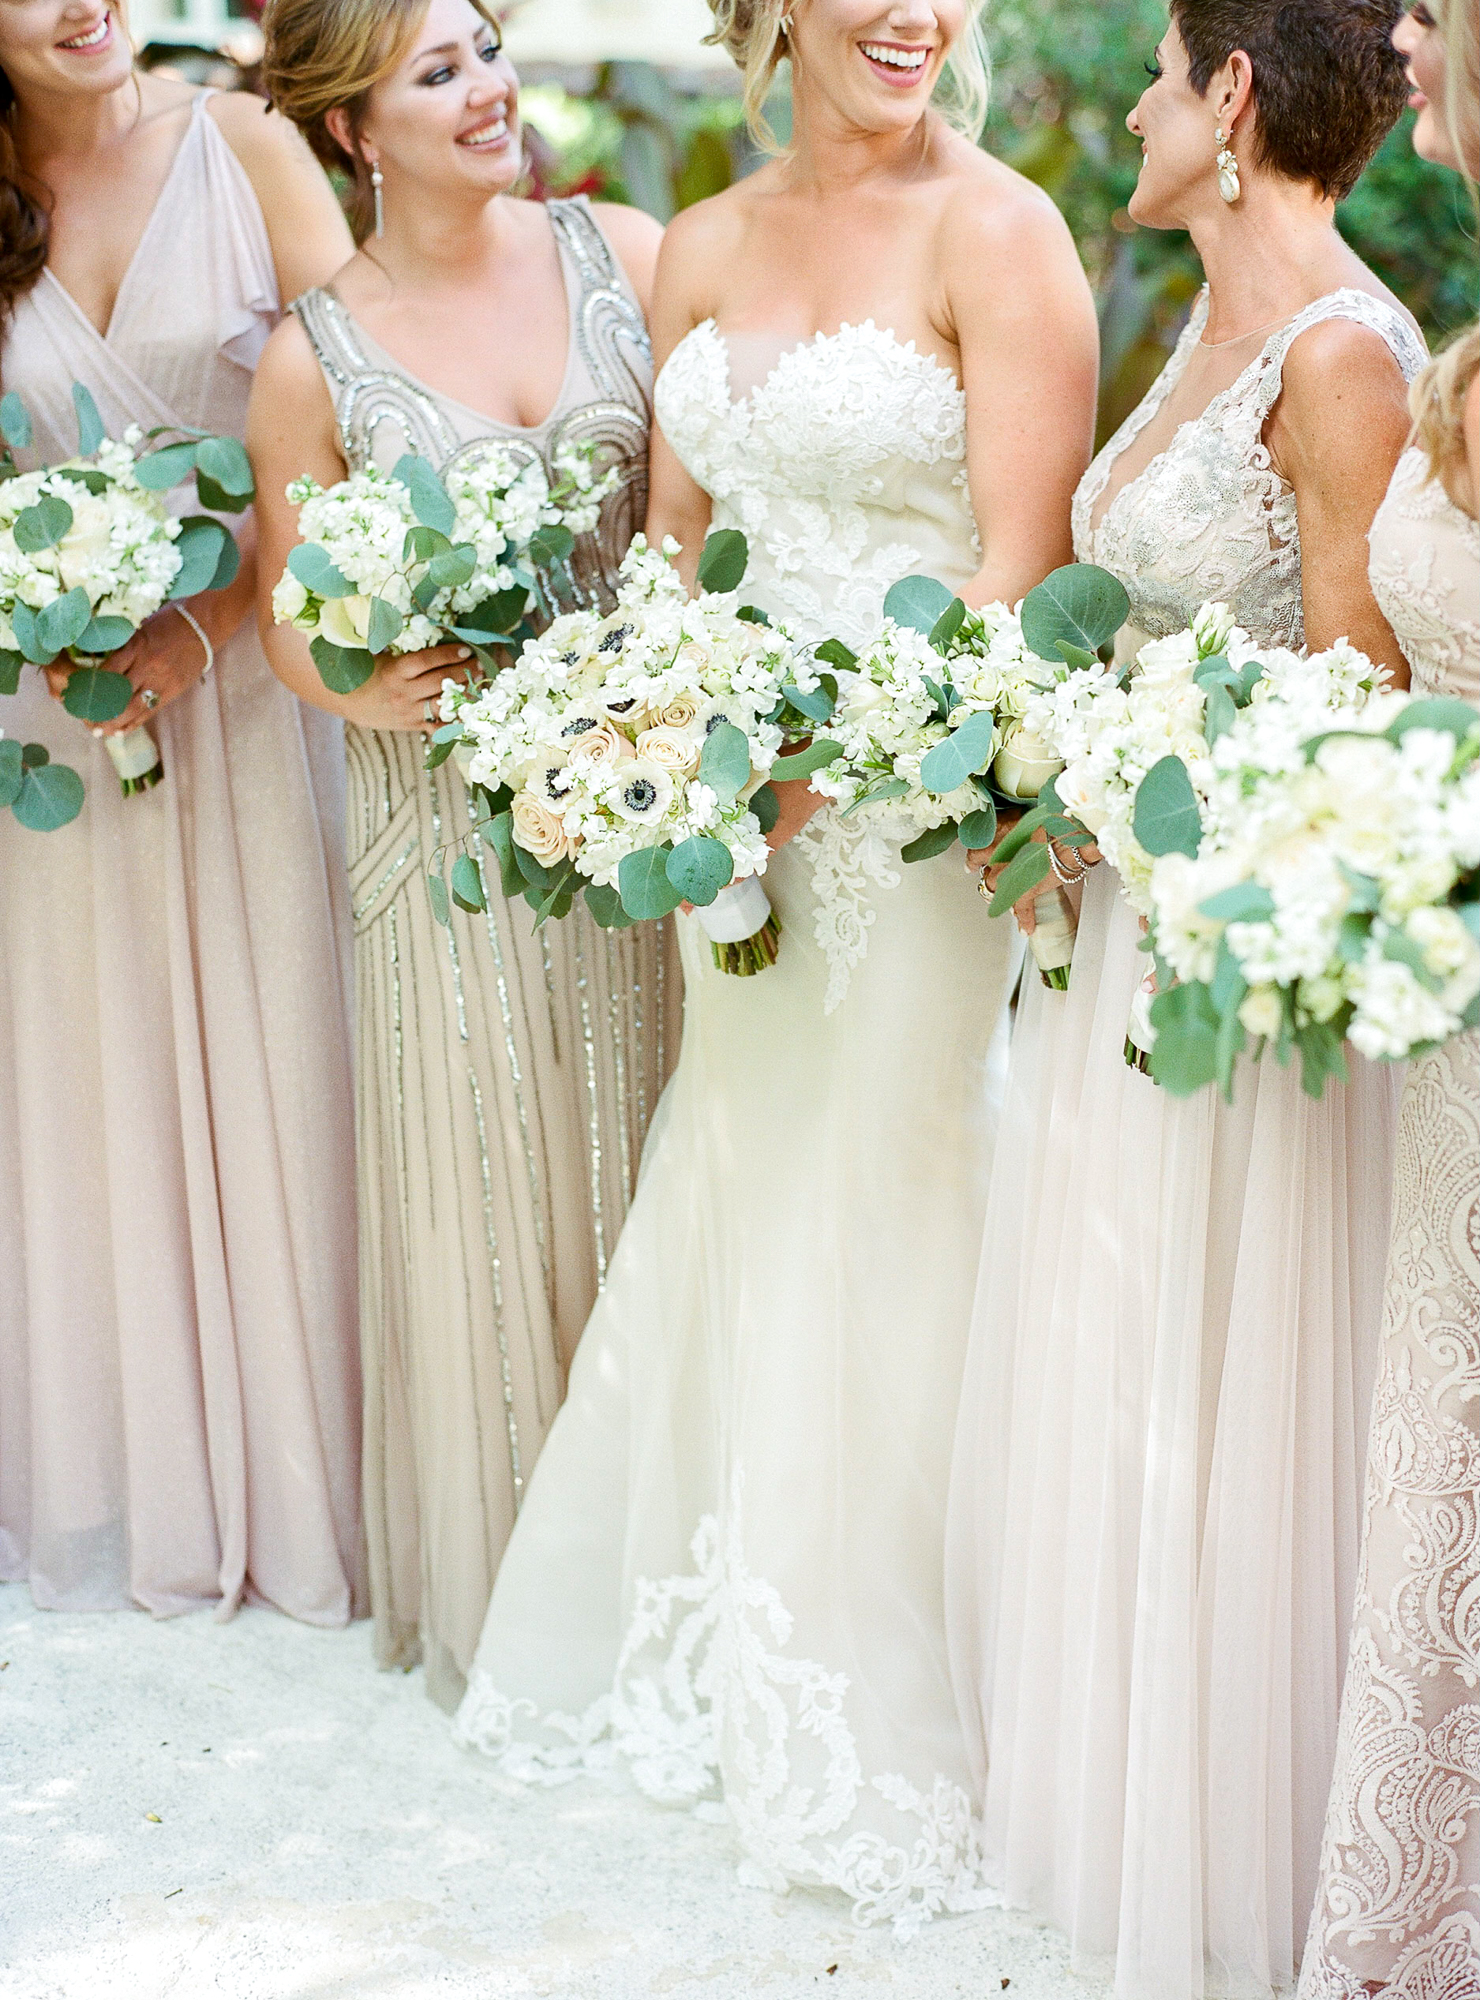 A closeup of the bouquets as the bride and bridal party stand outside and smile at each other.